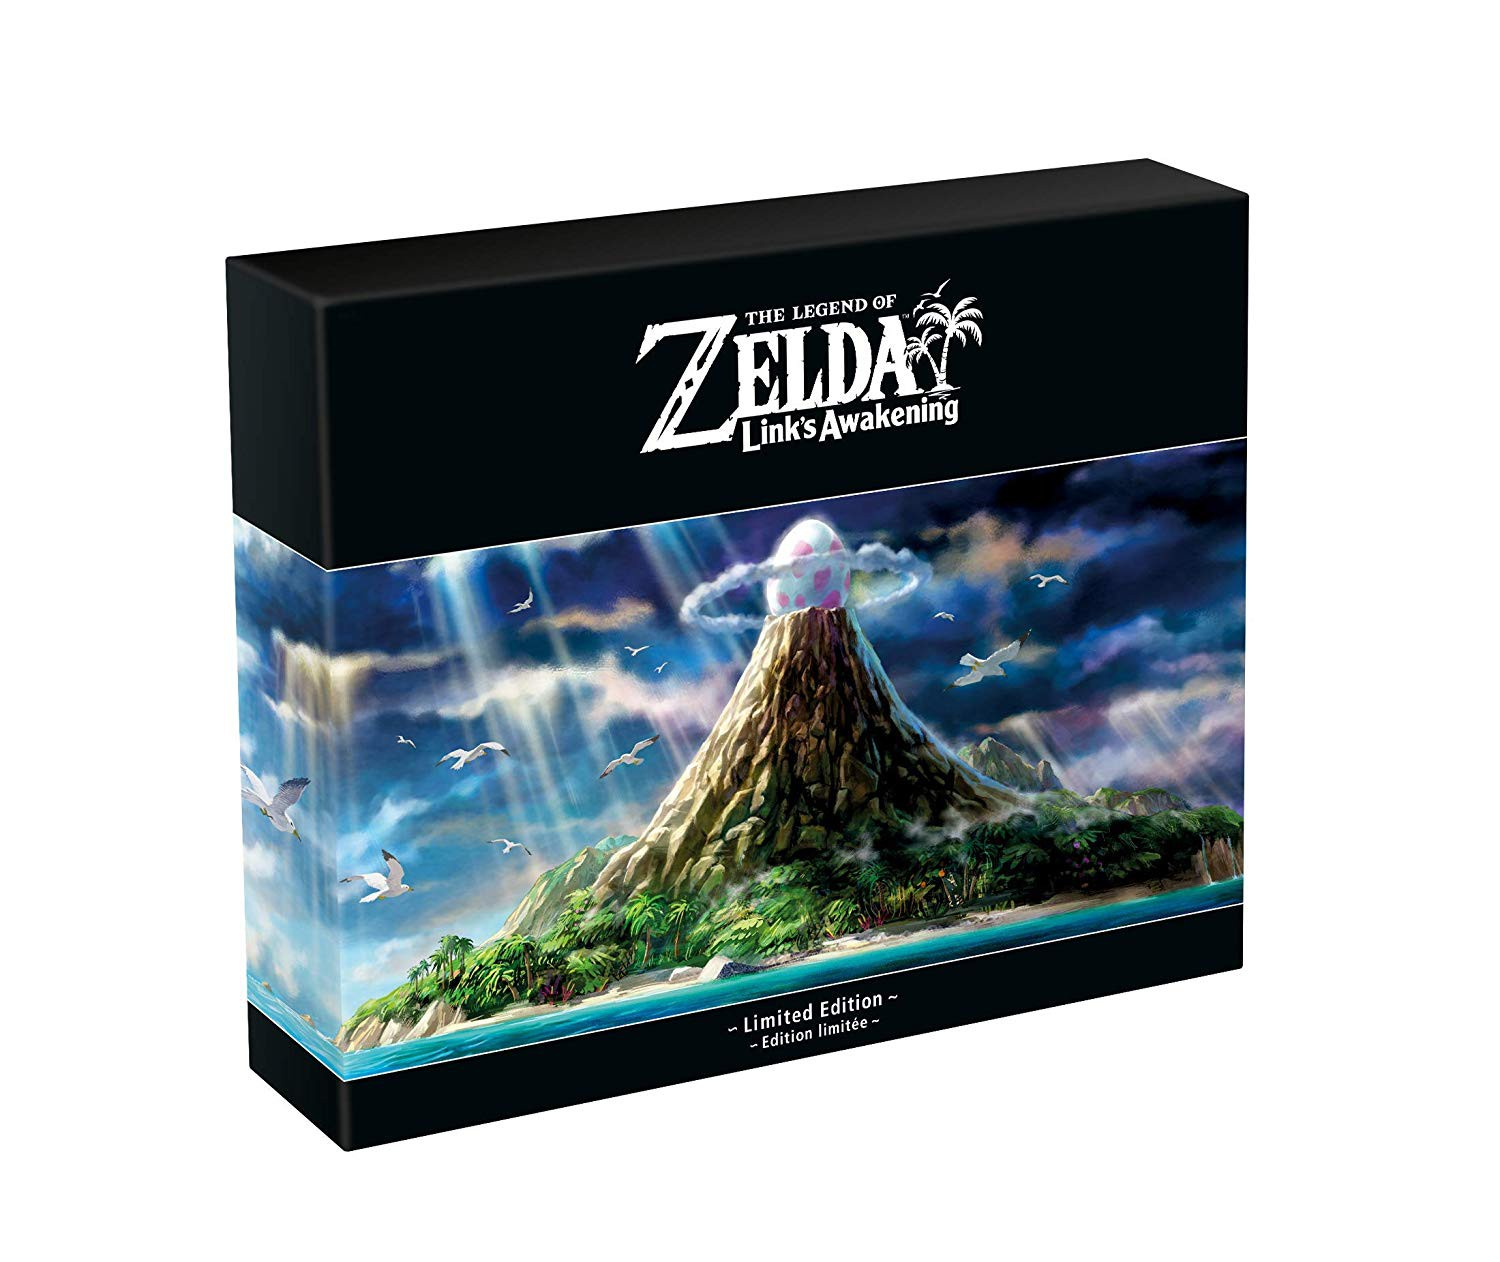 The Legend Of Zelda: Link's Awakening Limited Edition